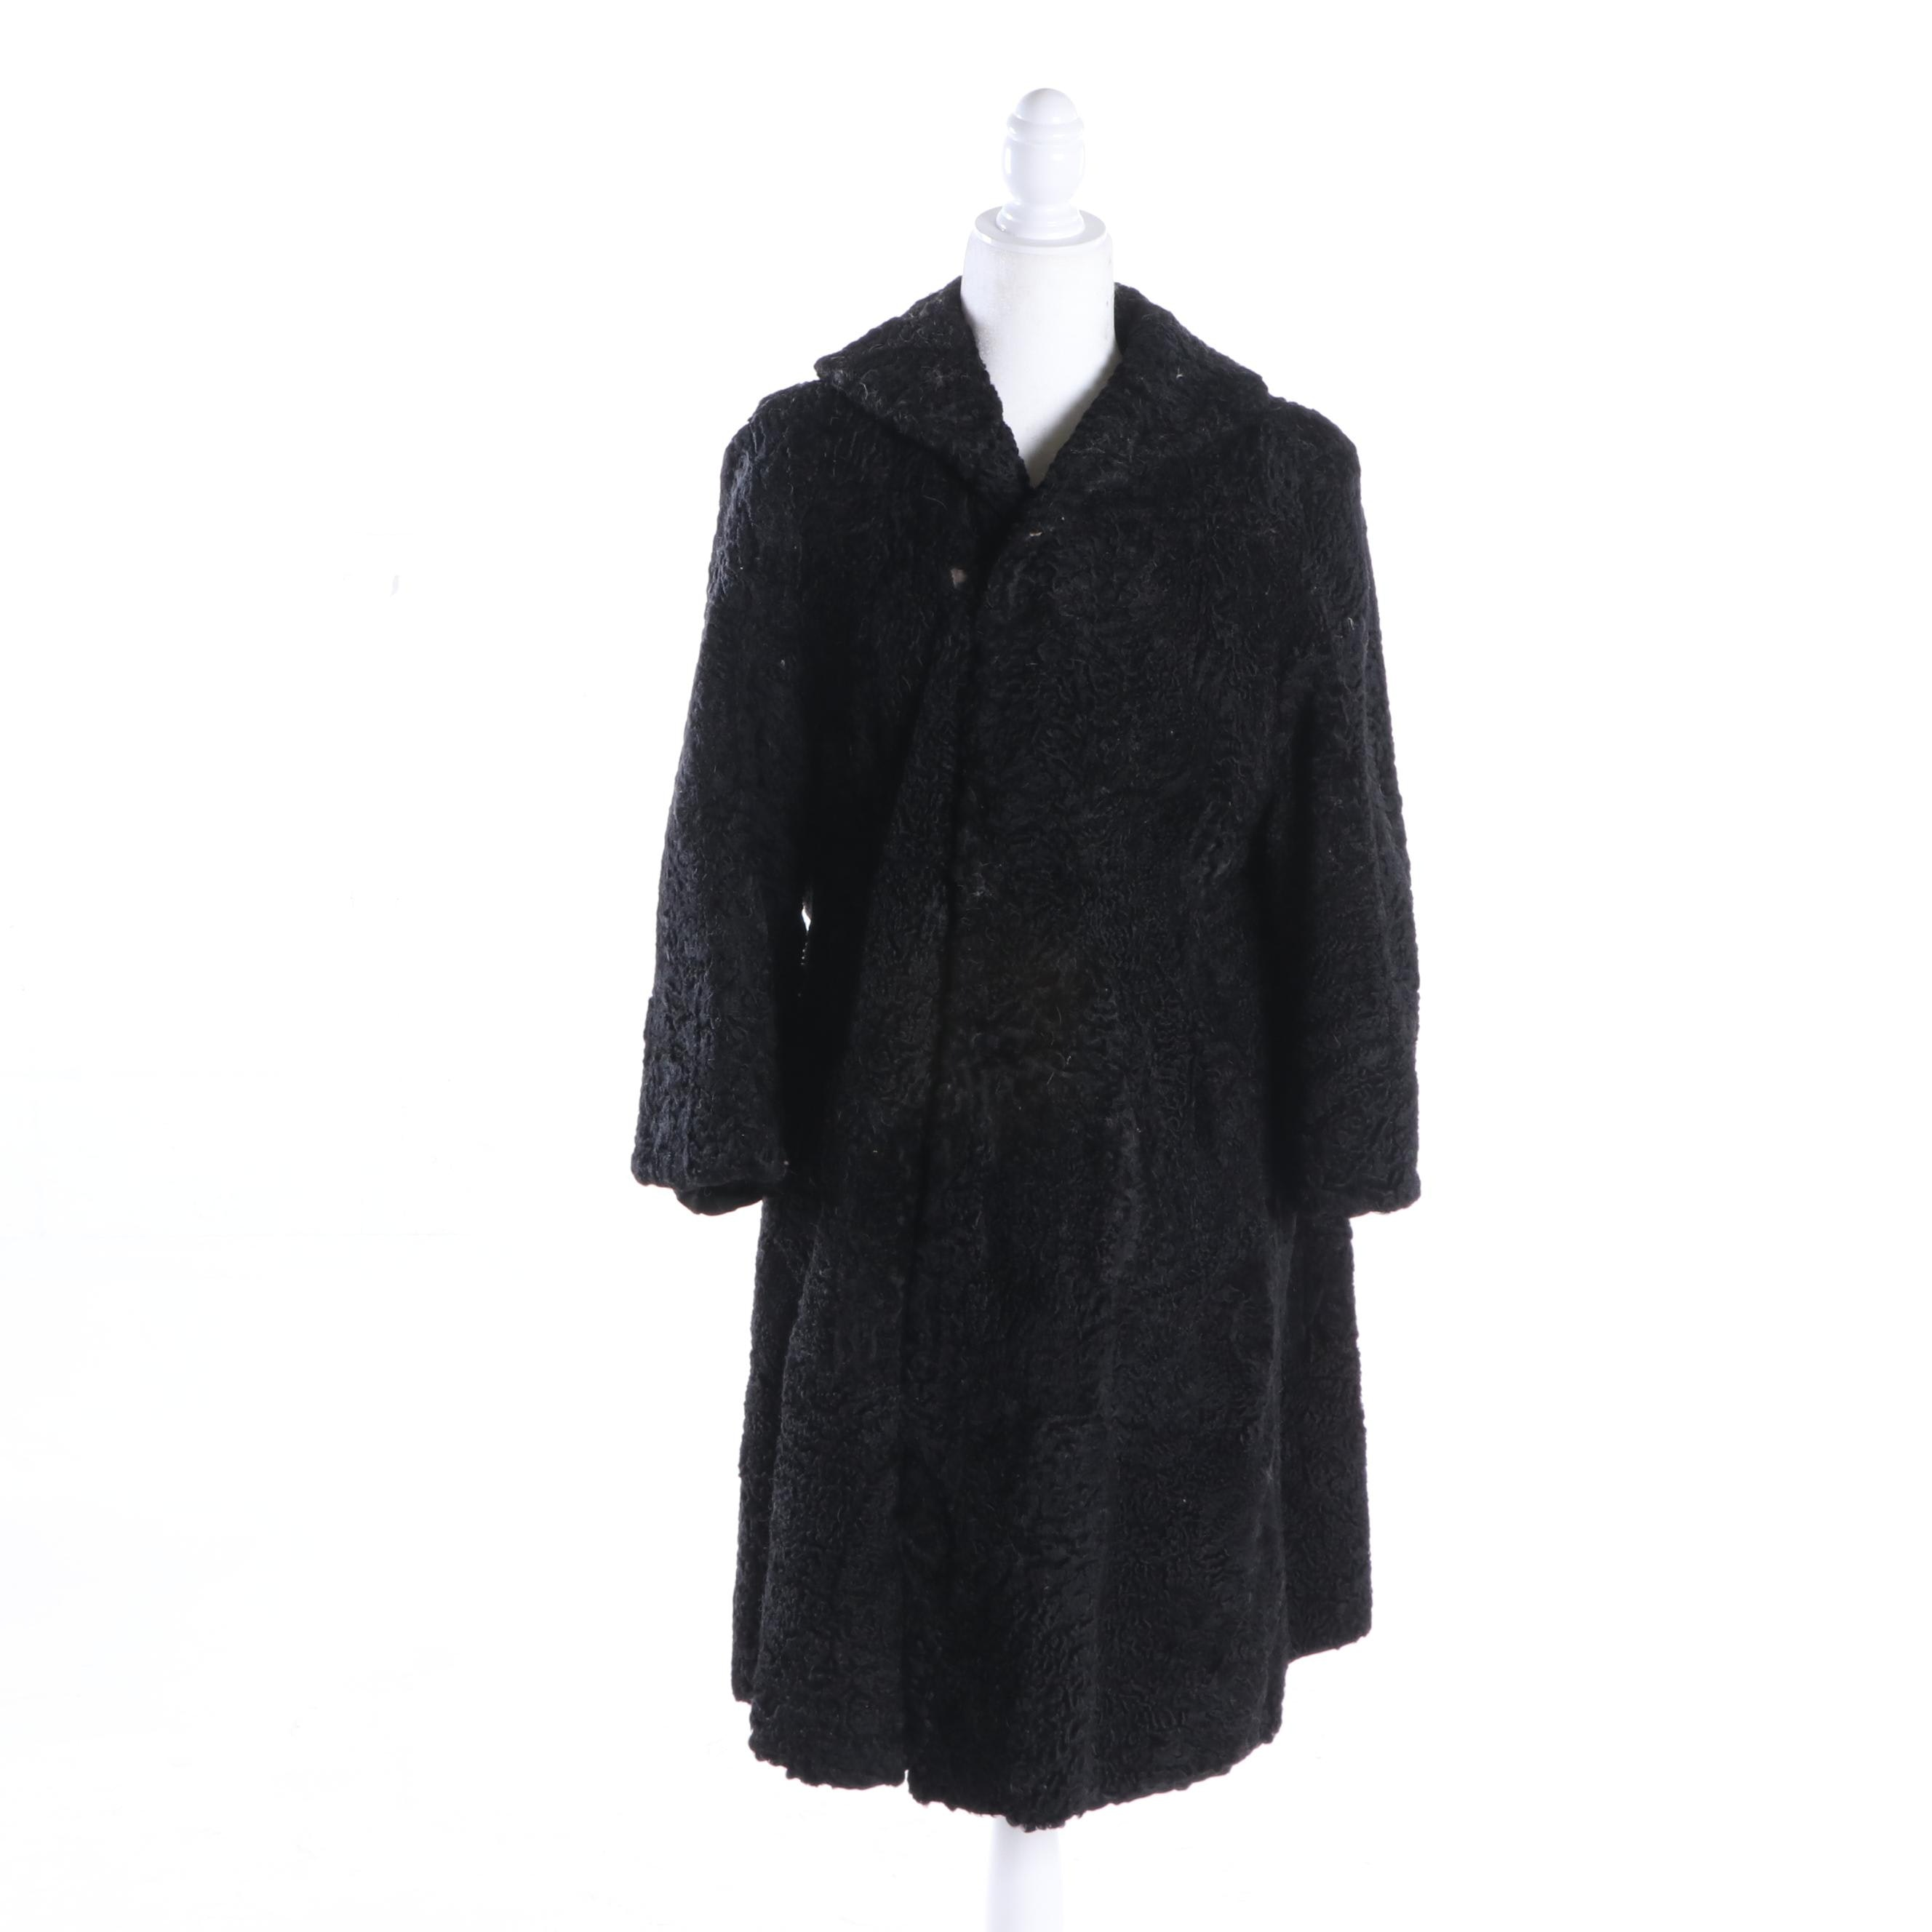 Cherry & Webb Co. Black Persian Lamb Fur Coat, Vintage